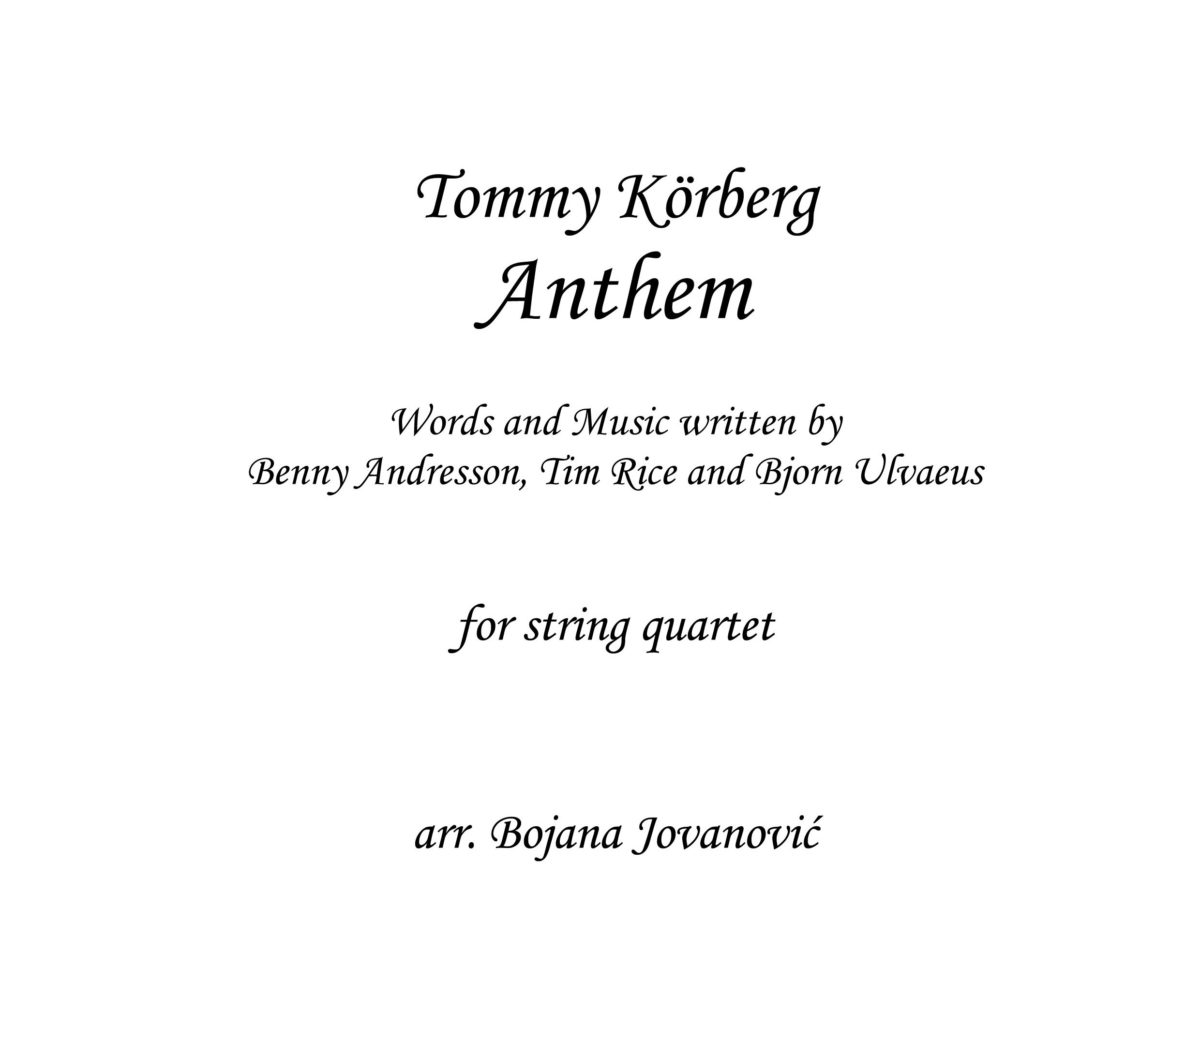 Anthem Sheet music (Chess song)